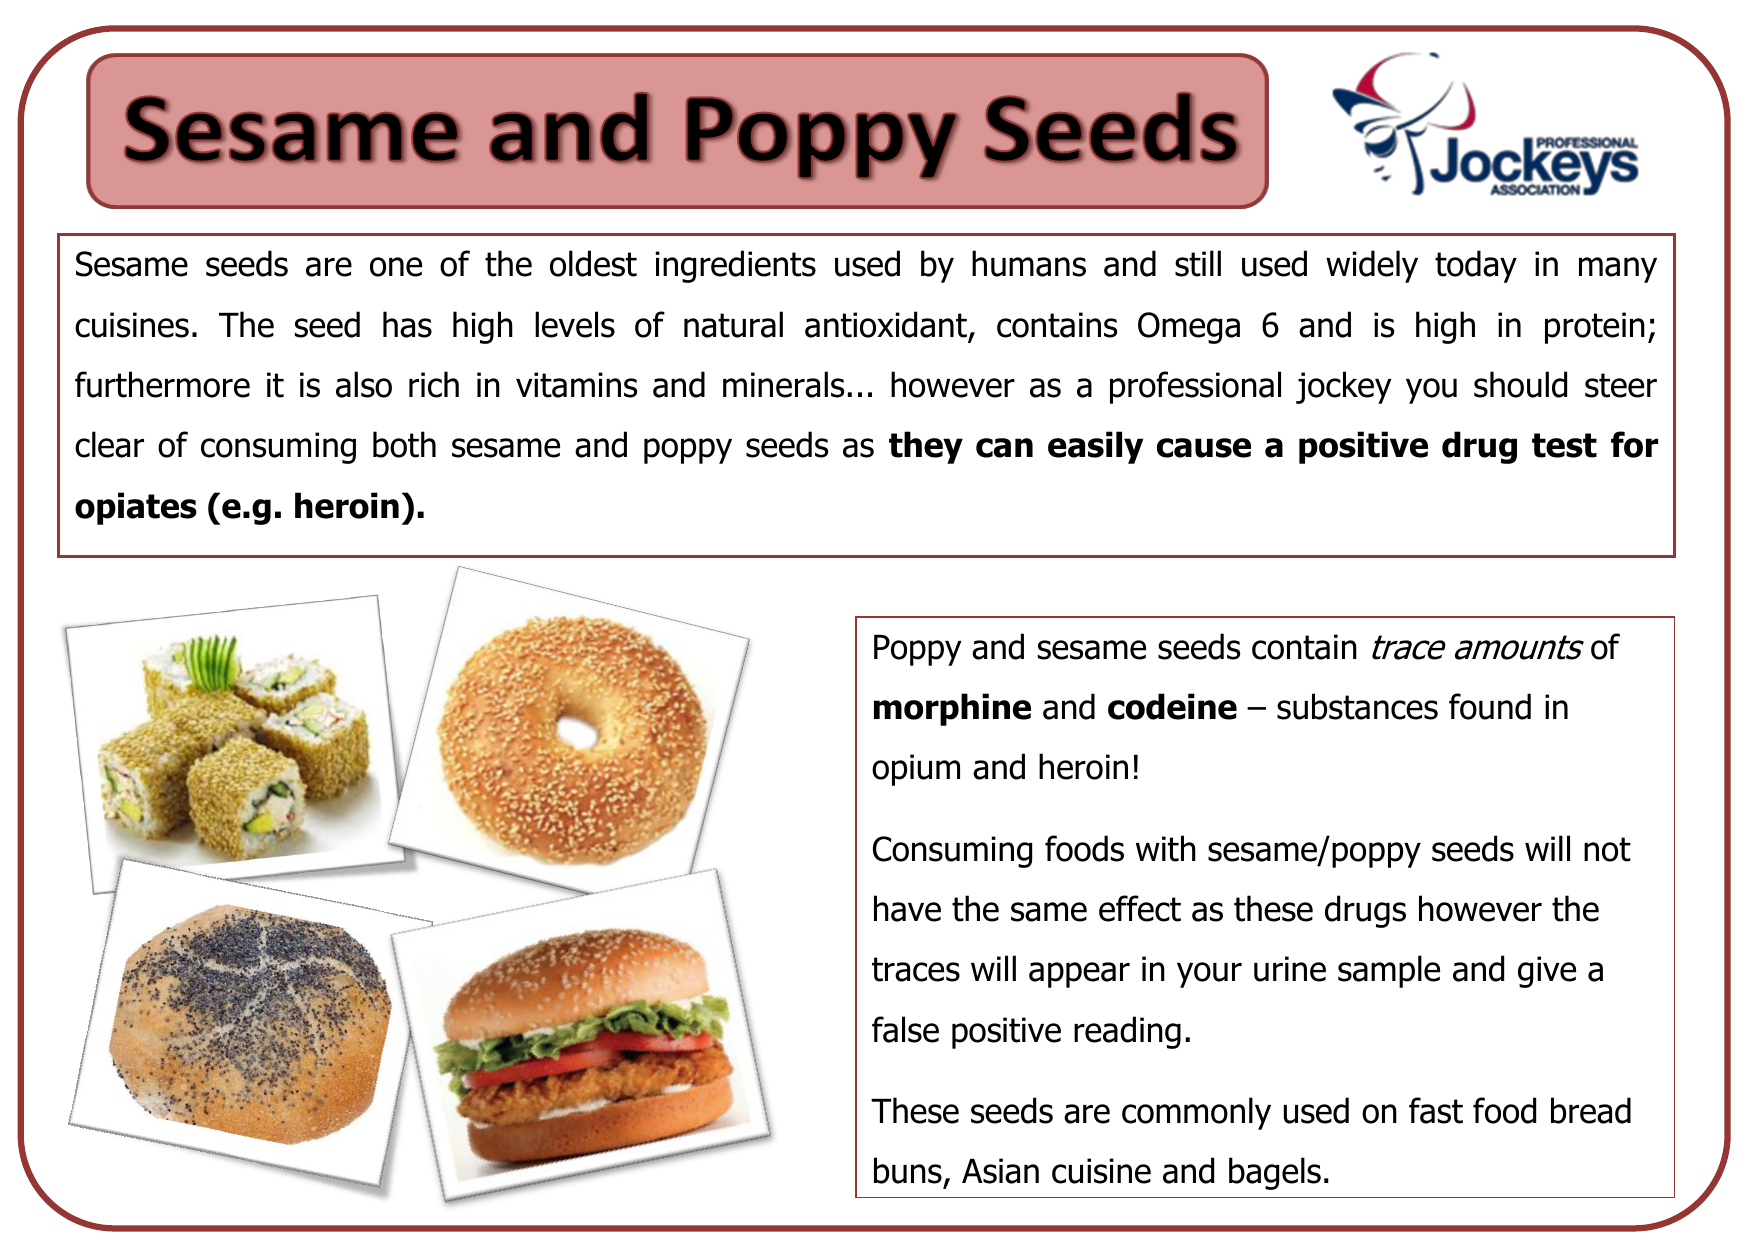 Sesame and Poppy Seeds - The Professional Jockeys Association